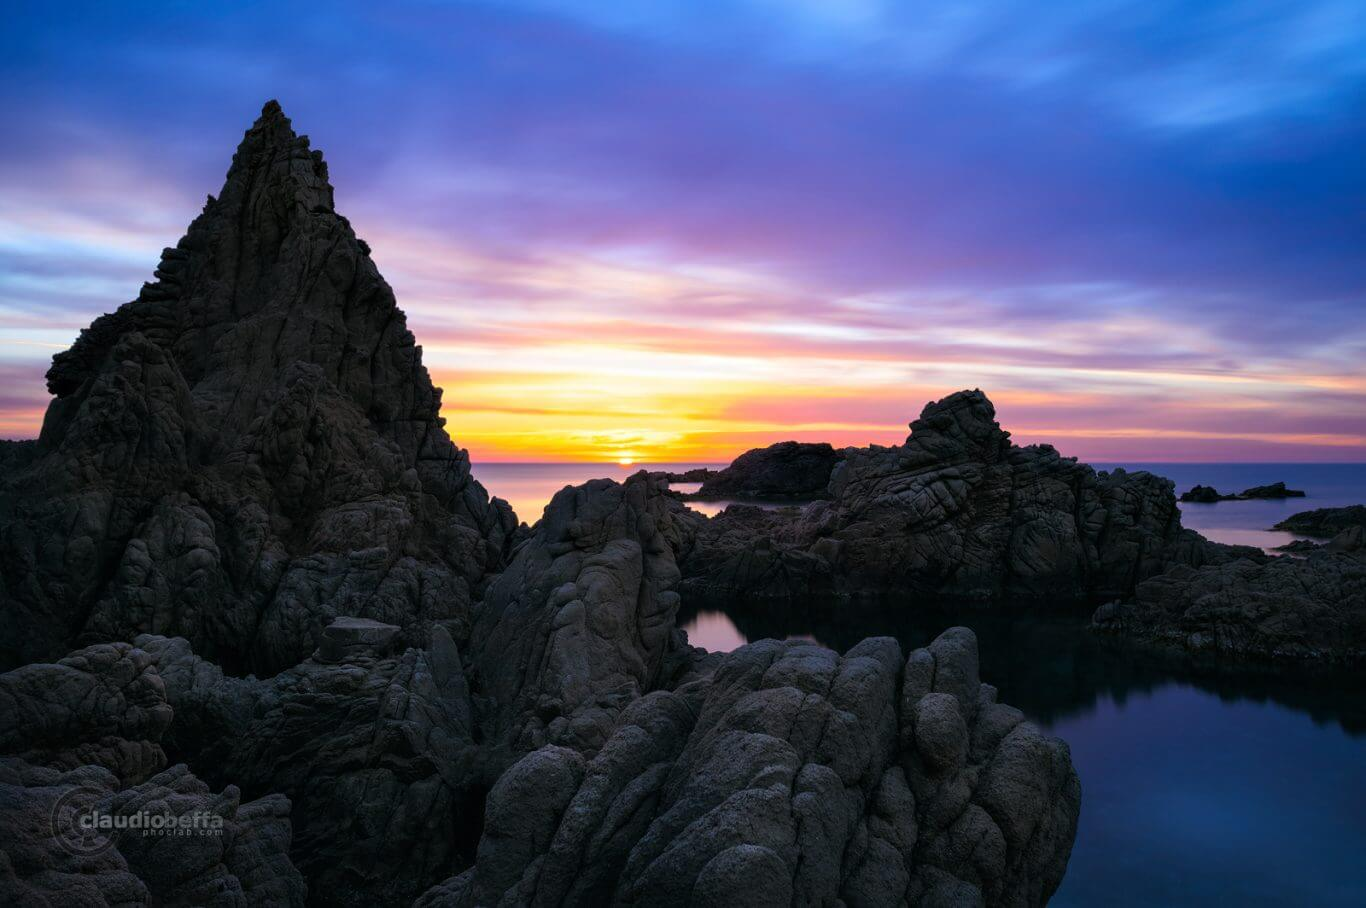 Capo Pecora, Sardinia, Italy, Sea, Seascape, Sunset, Blue hour, Cove, Rocks, Silhouettes, Long exposure, Ephemeral